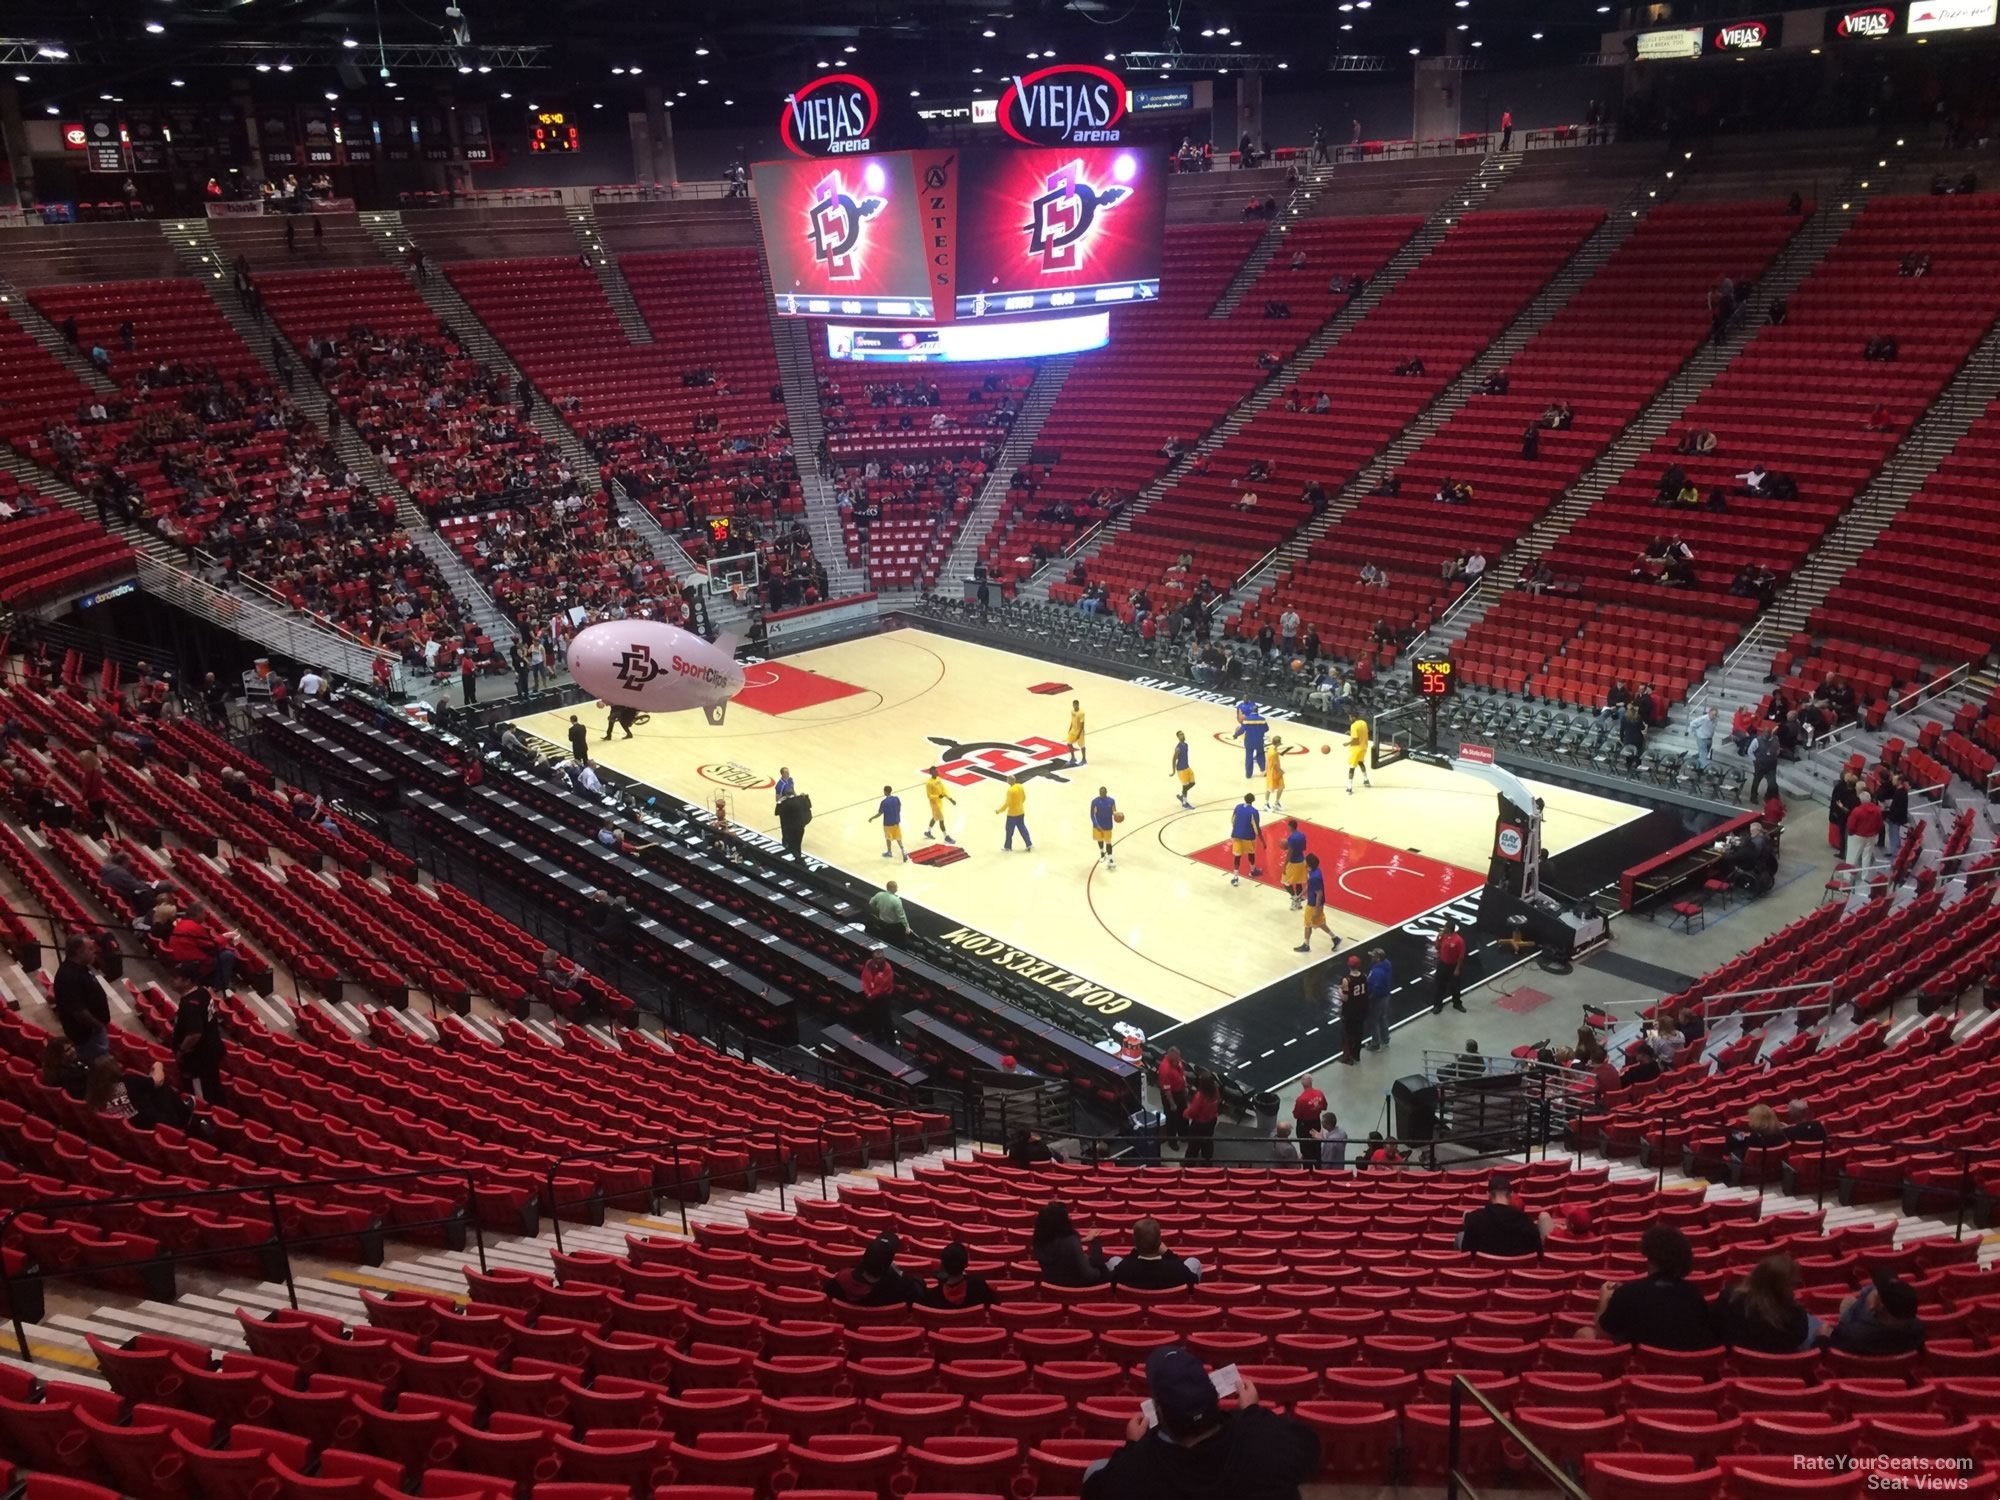 View from Section U Row 30 at Viejas Arena